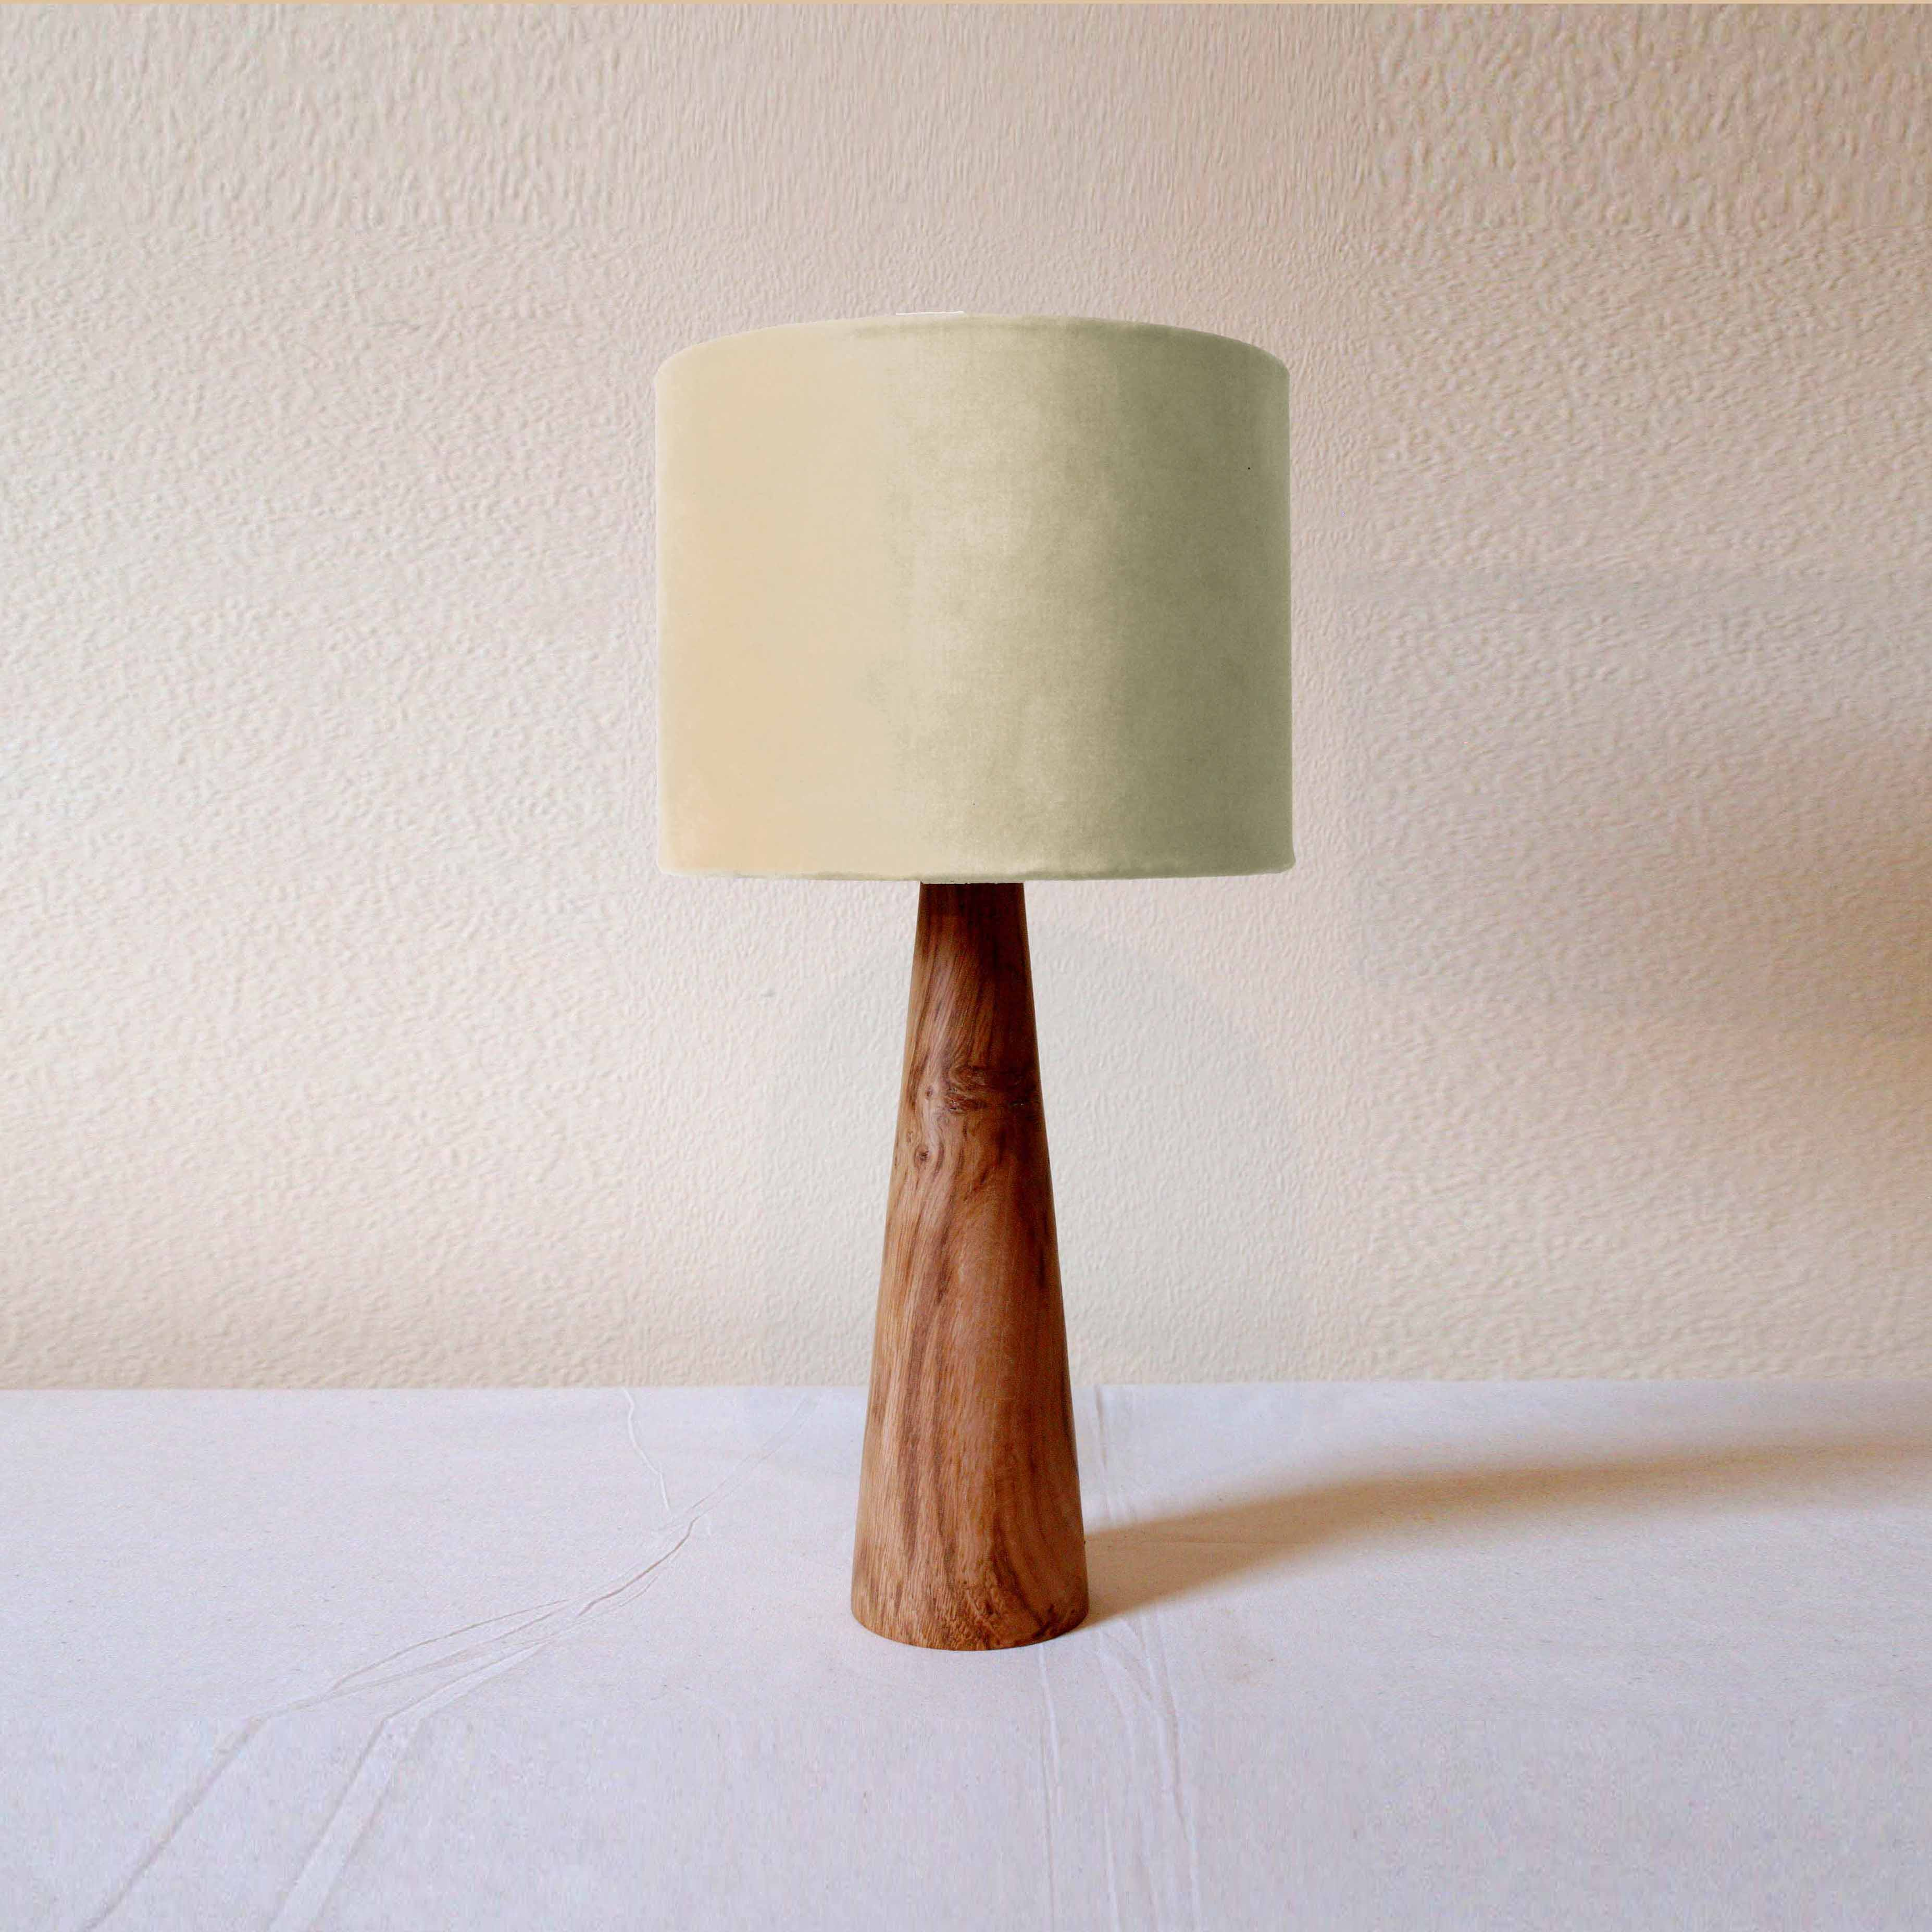 Wooden Table Lamps Designs Choosing The Right Bedside Floor Lamp Warisan Lighting